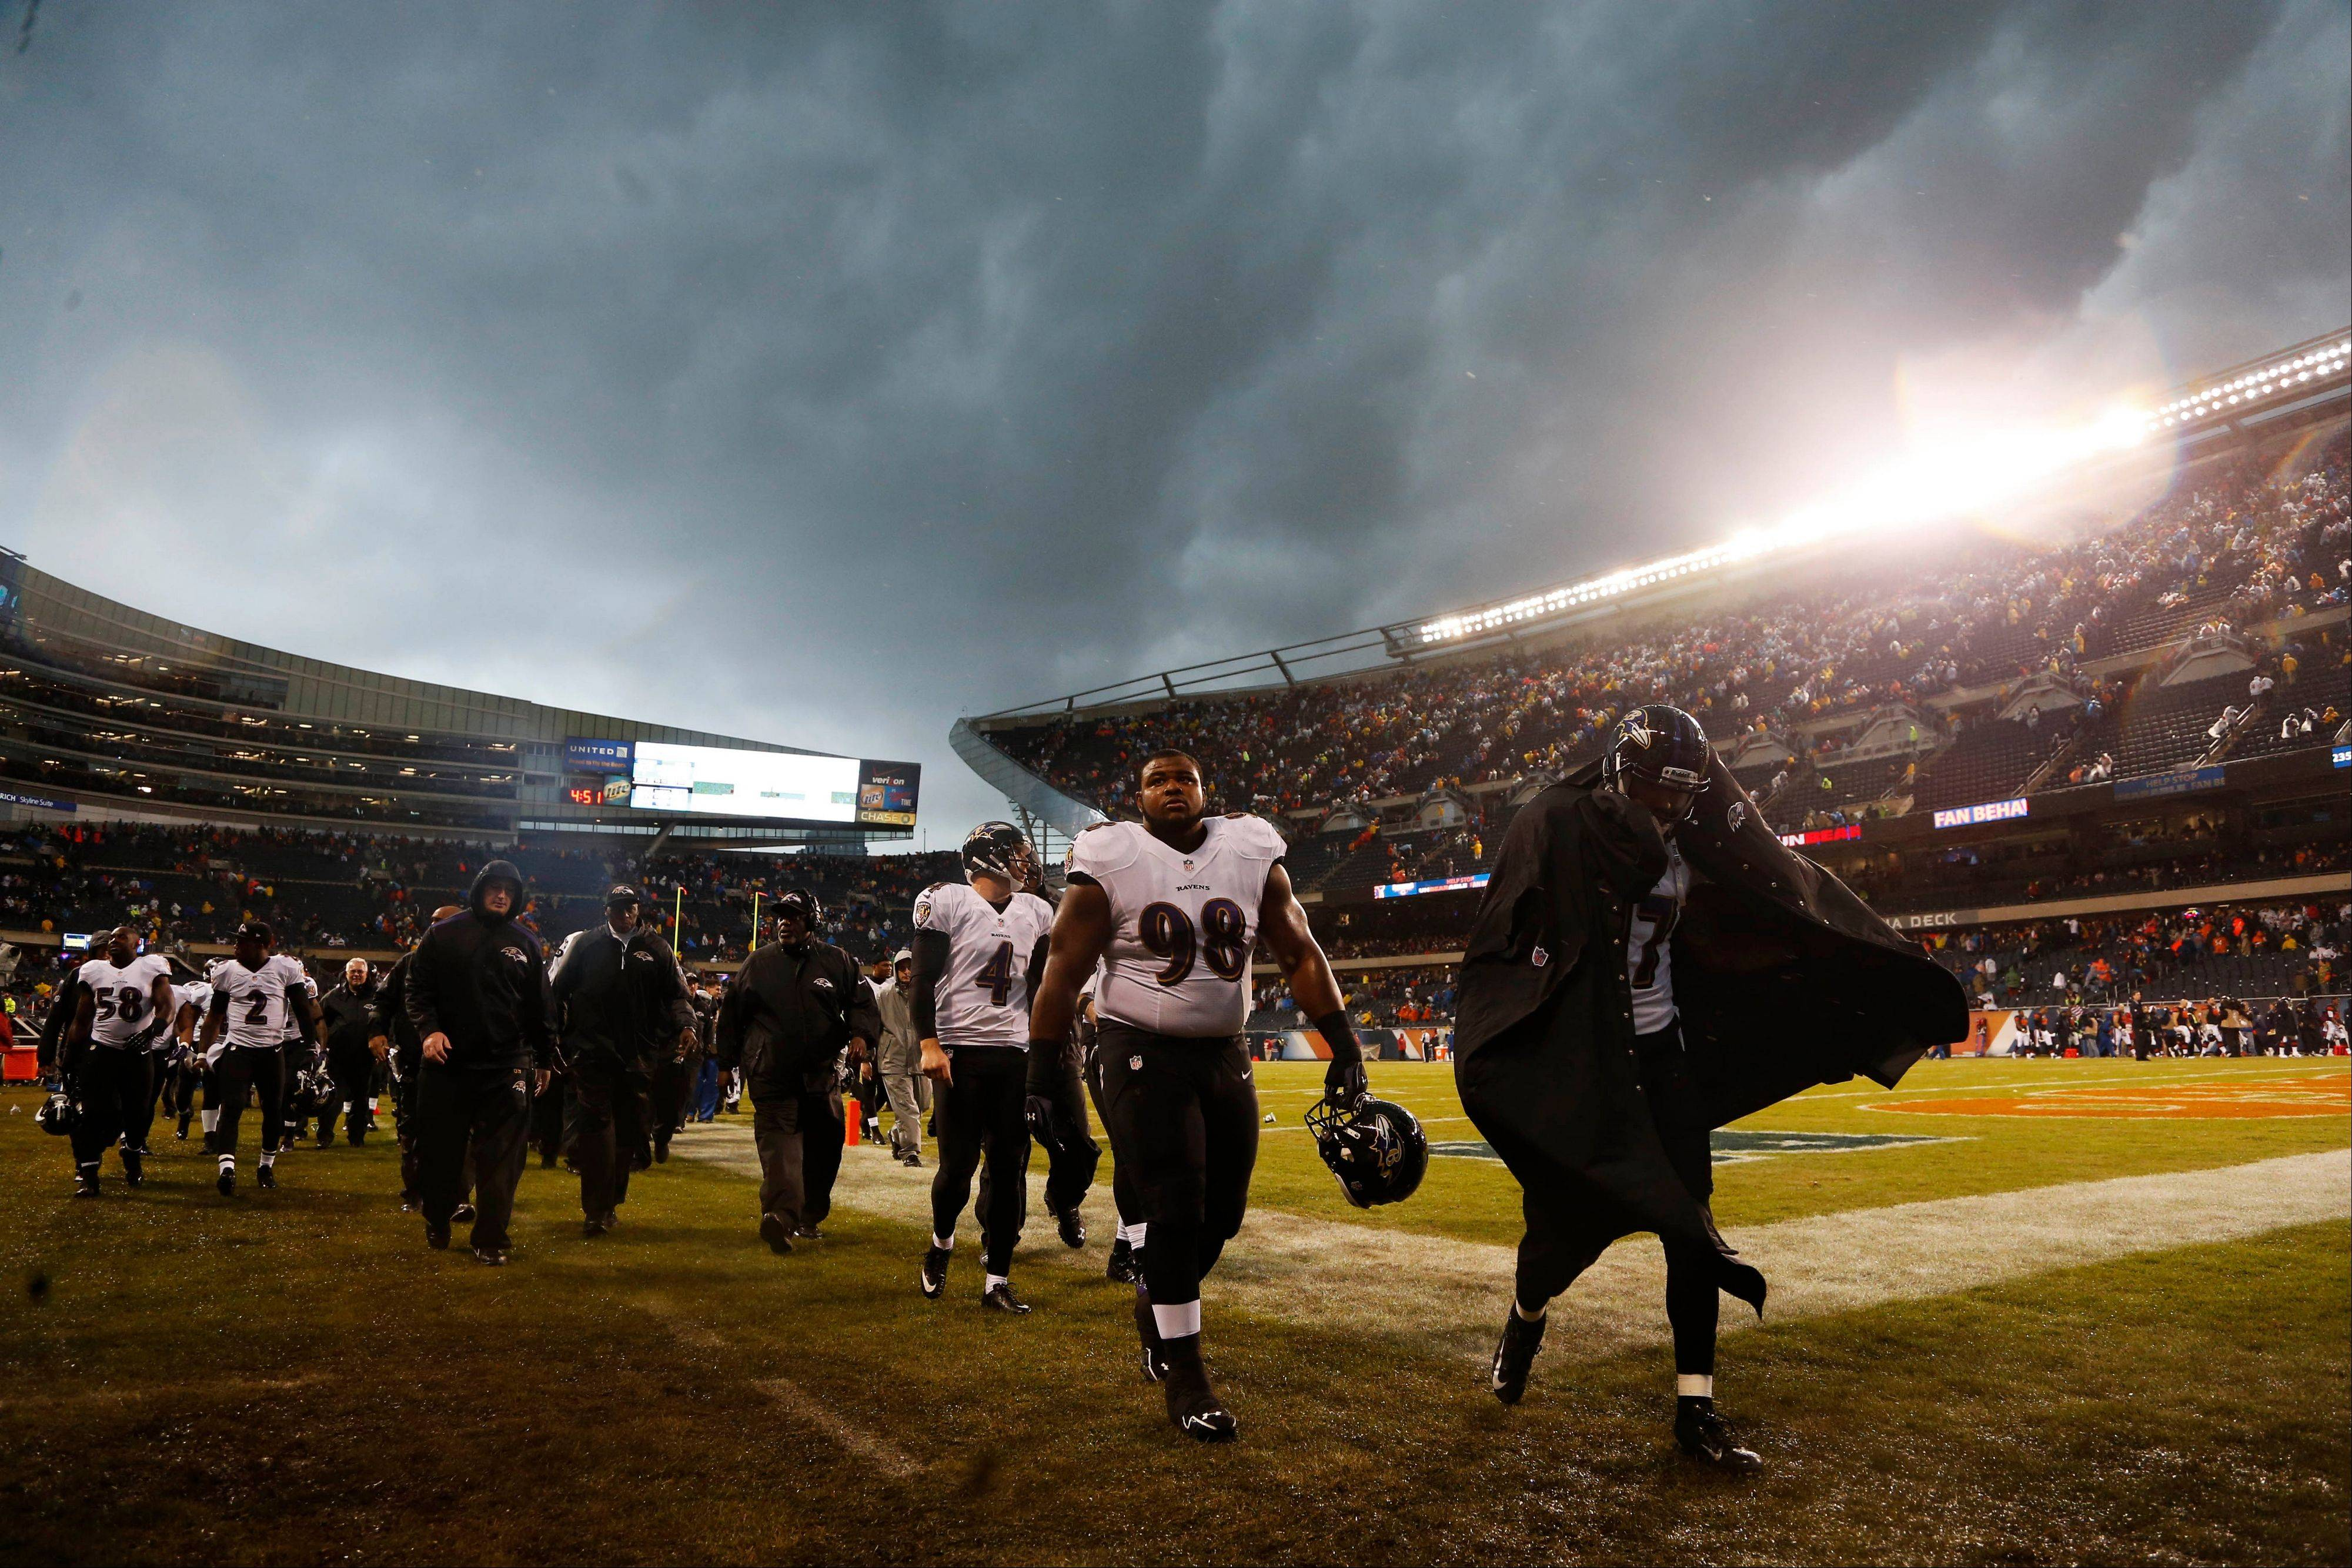 Baltimore Ravens players leave the field as play was suspended for a severe thunderstorm blowing through Soldier Field during the first half of an NFL football game Sunday against the Chicago Bears in Chicago. The Bears would go on to win 23-20 in overtime.